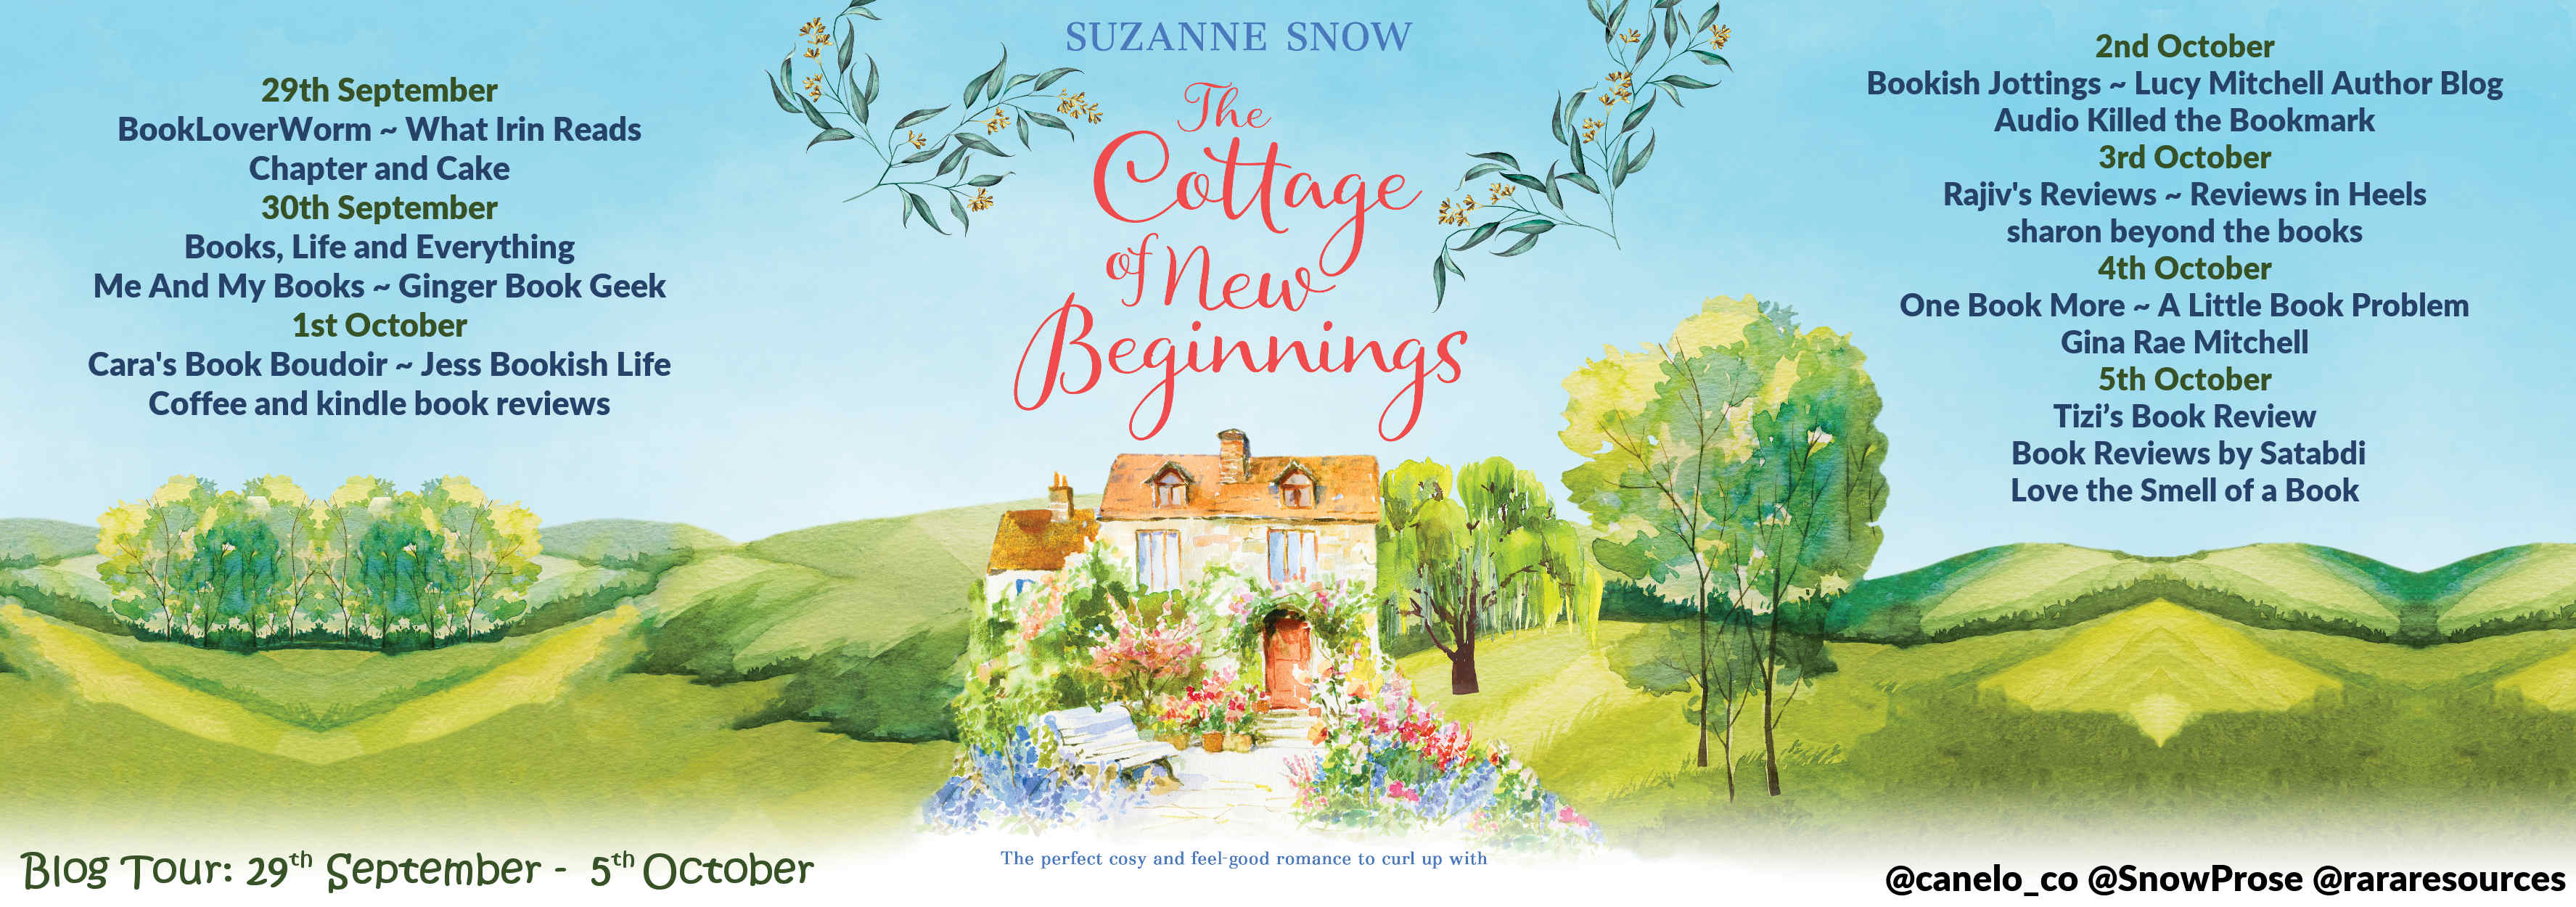 The Cottage of New Beginnings Full Tour Banner